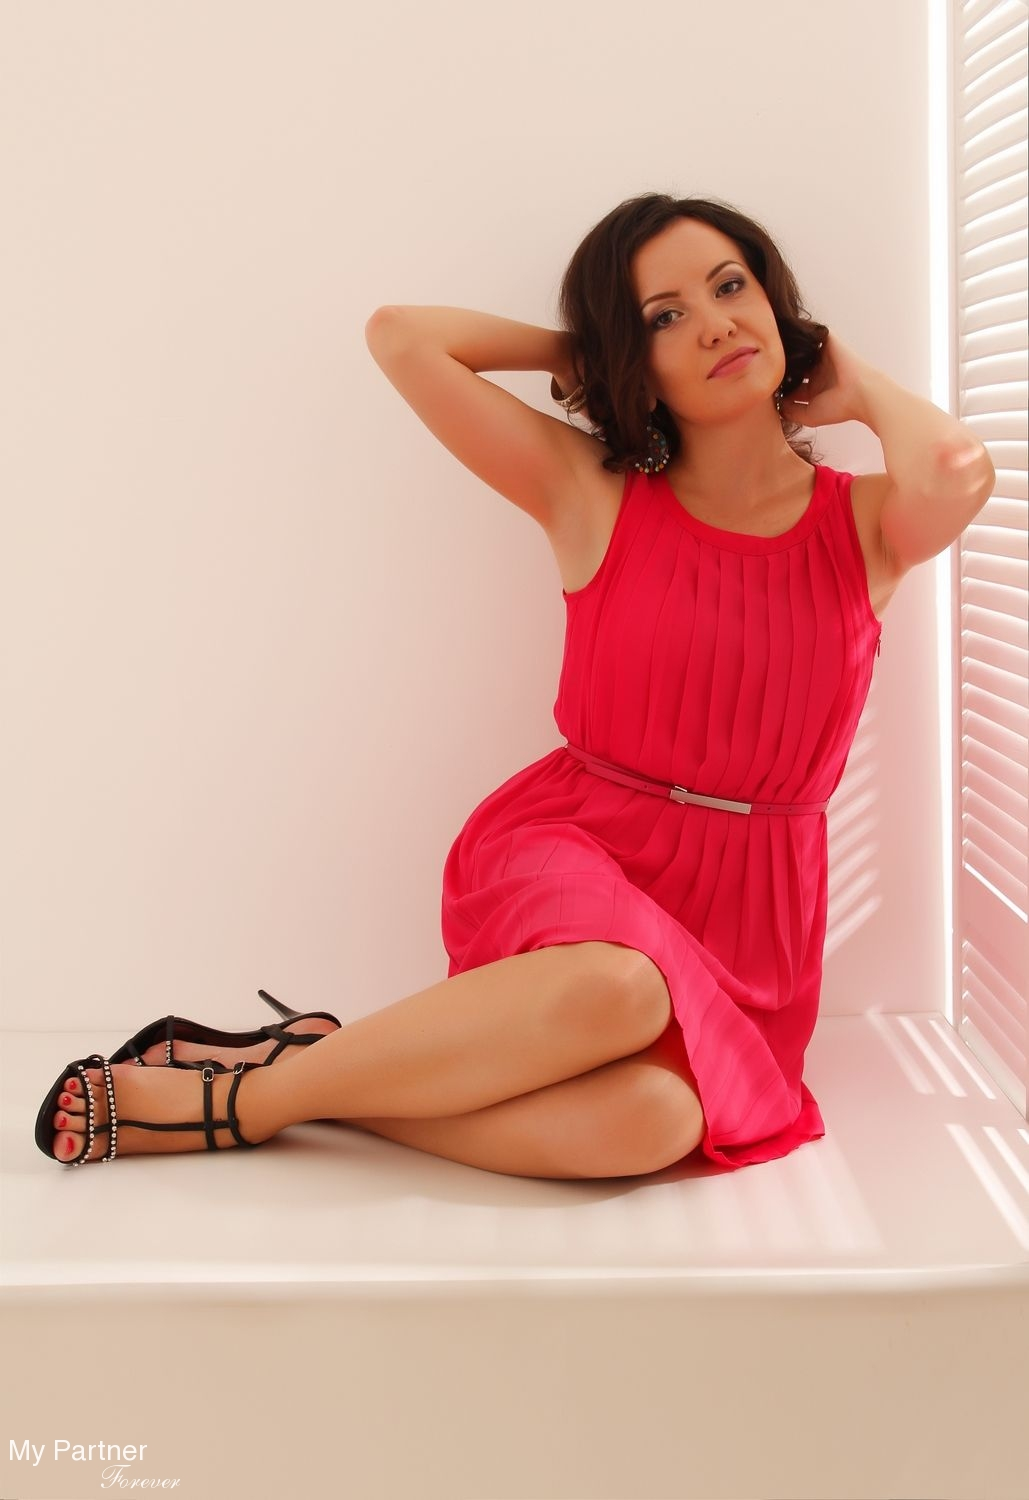 Marriage Agency Service to Meet Ekaterina from Novosibirsk, Russia